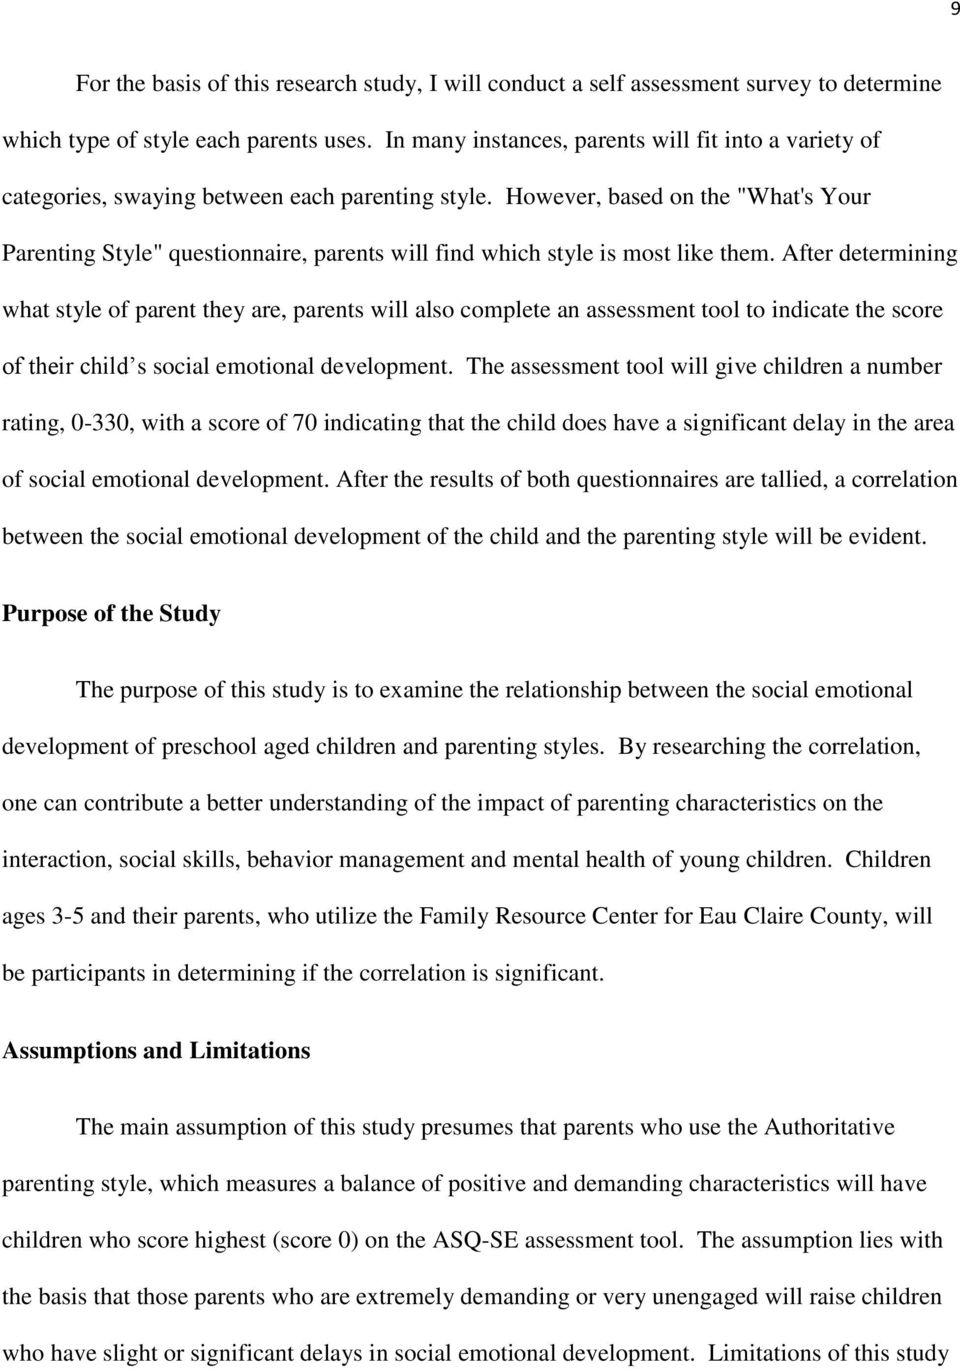 The Effects of Parenting Styles on a Preschool Aged  Child s Social